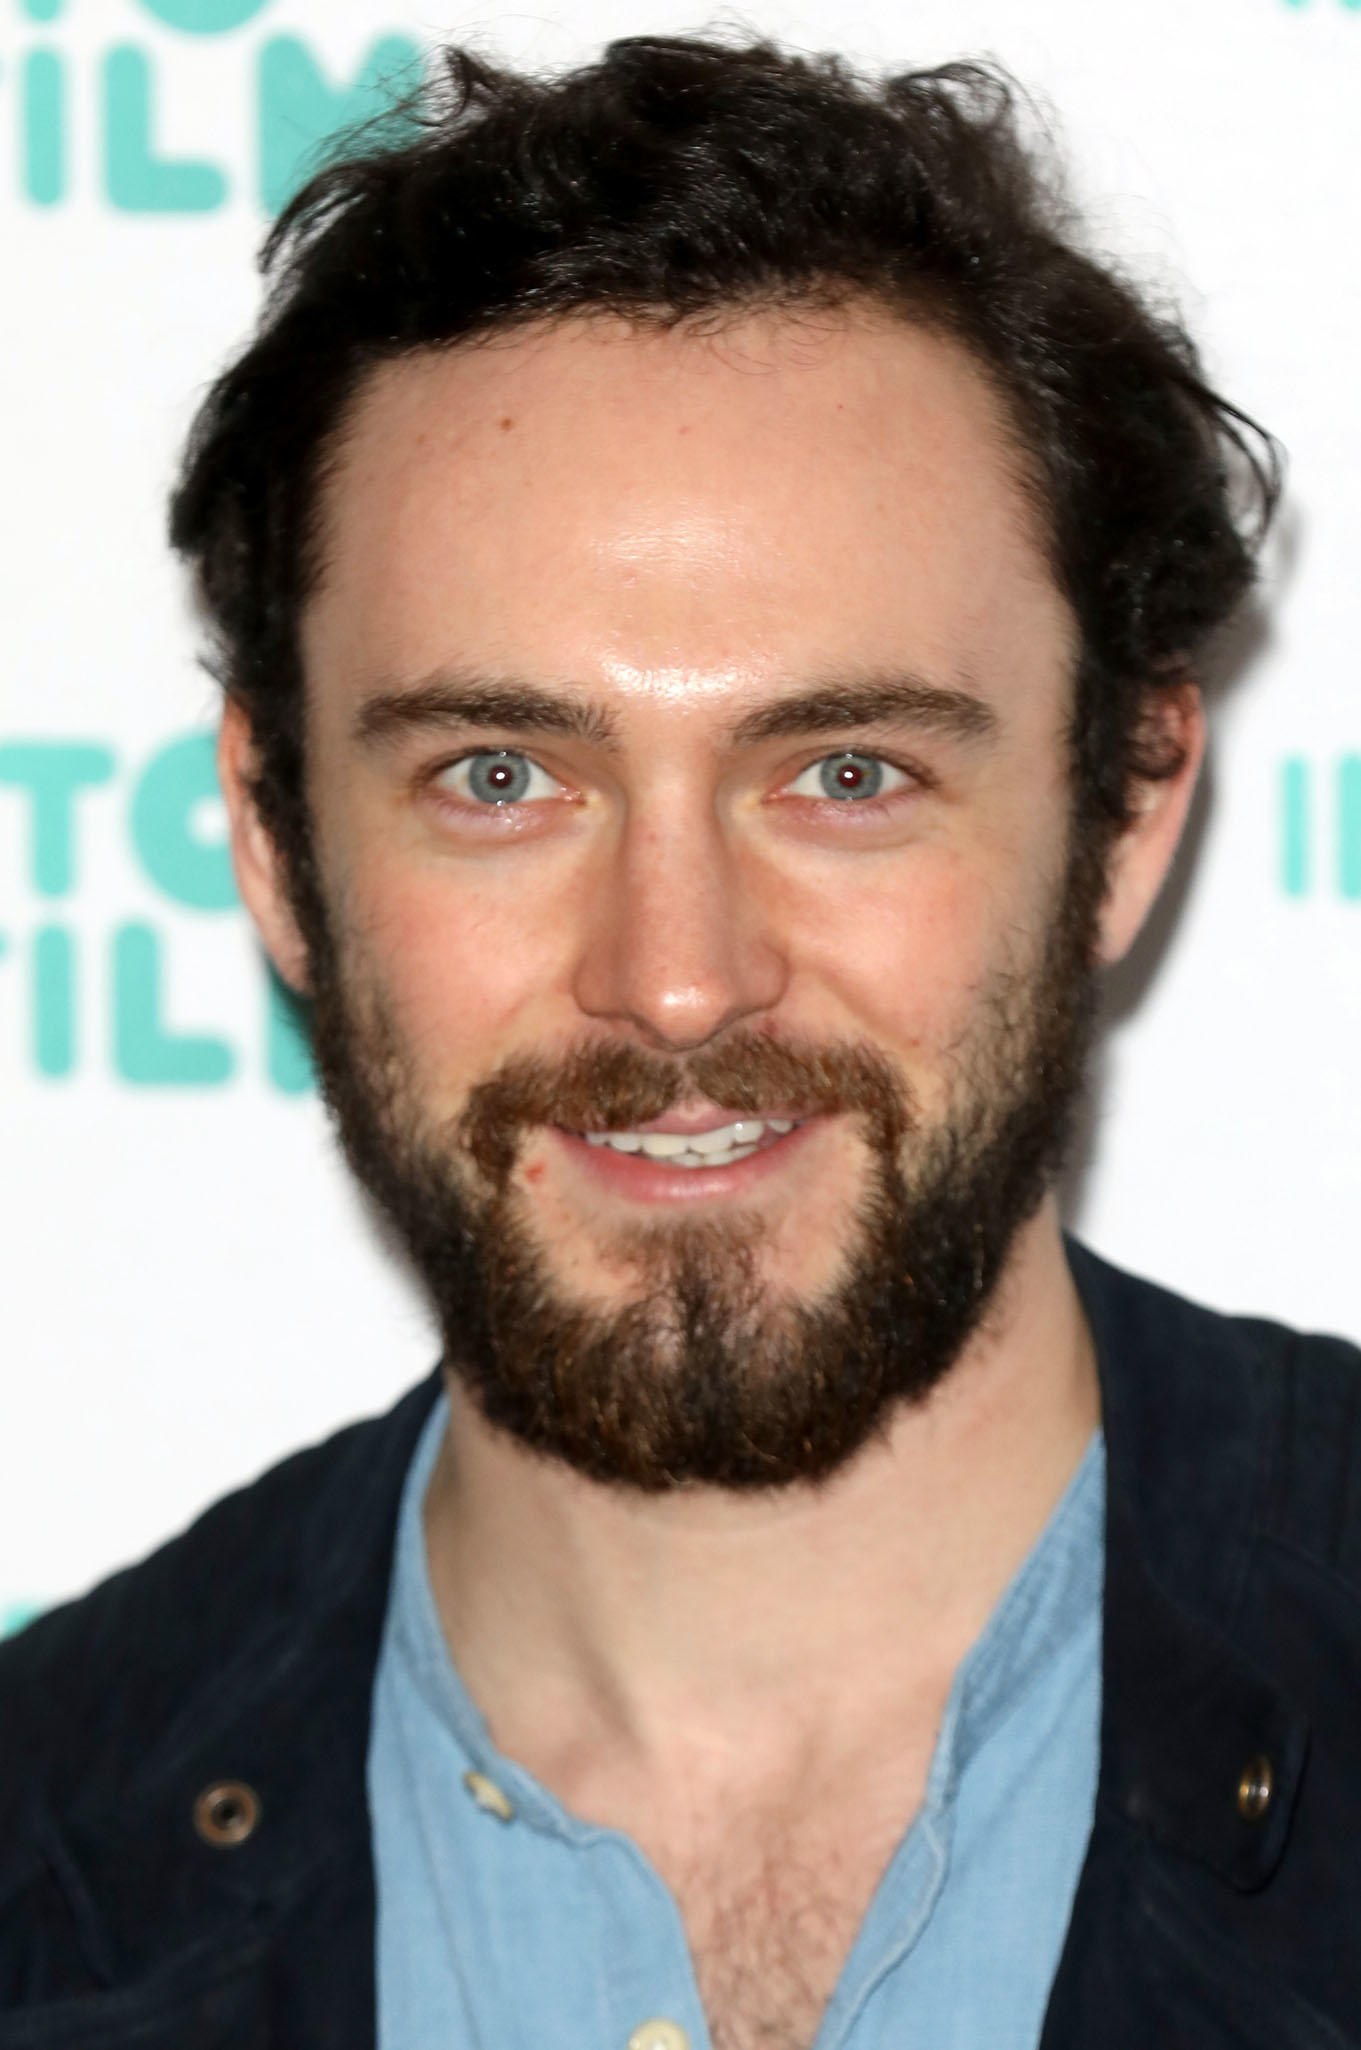 George Blagden at the Into Film Awards 2017 in London.